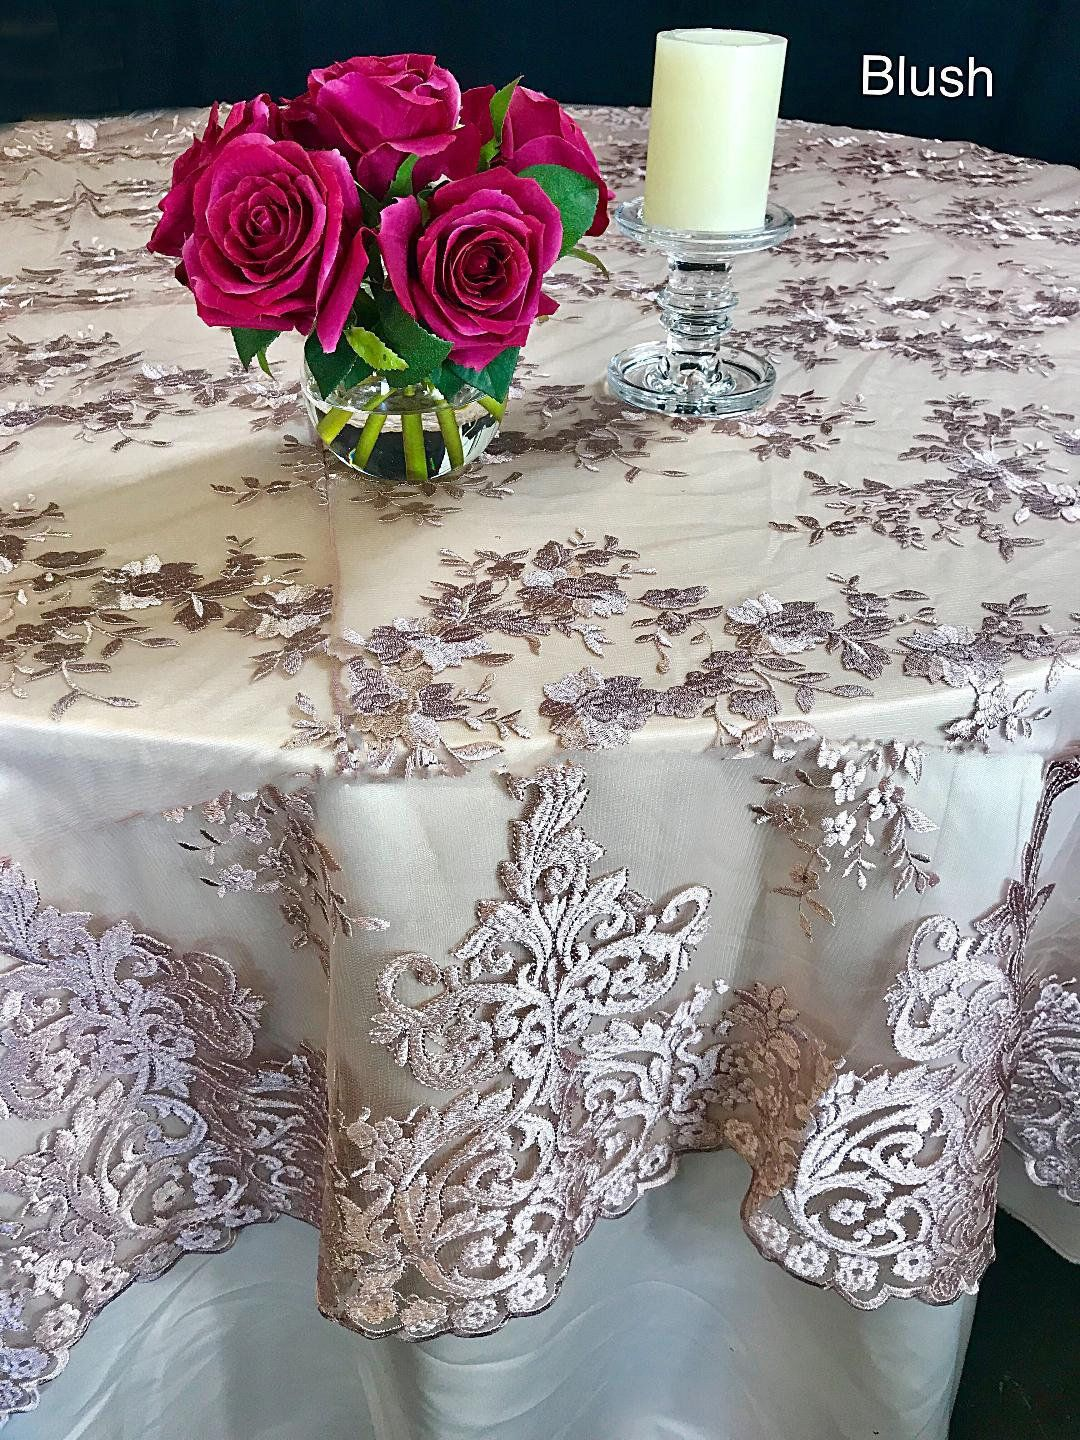 All Colors Lace Tablecloth Blush Overlay Wedding Decor Table Cloth By